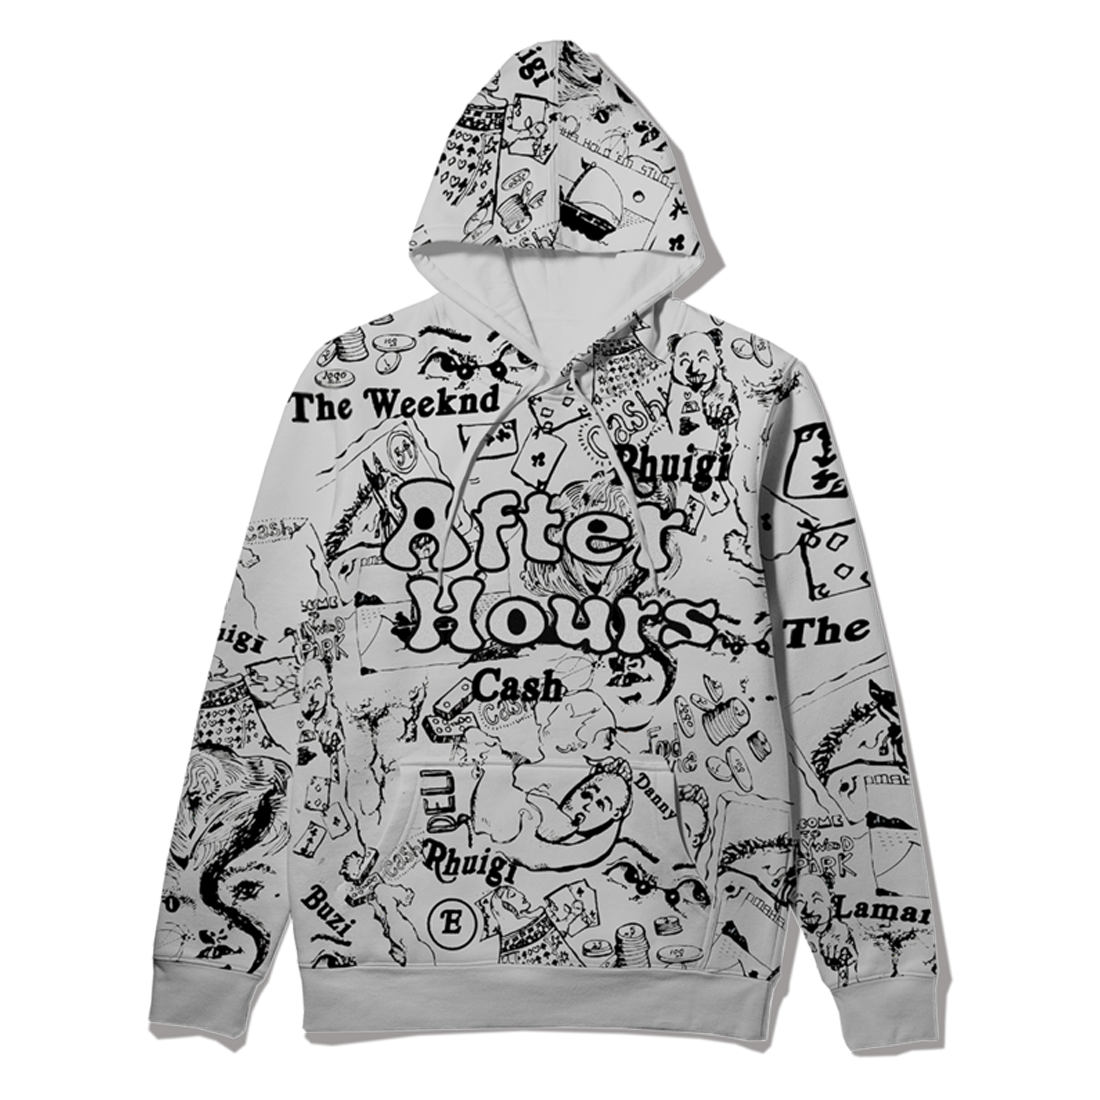 The Weeknd: RHUIGI AFTER HOURS DISGUISE PULLOVER HOOD